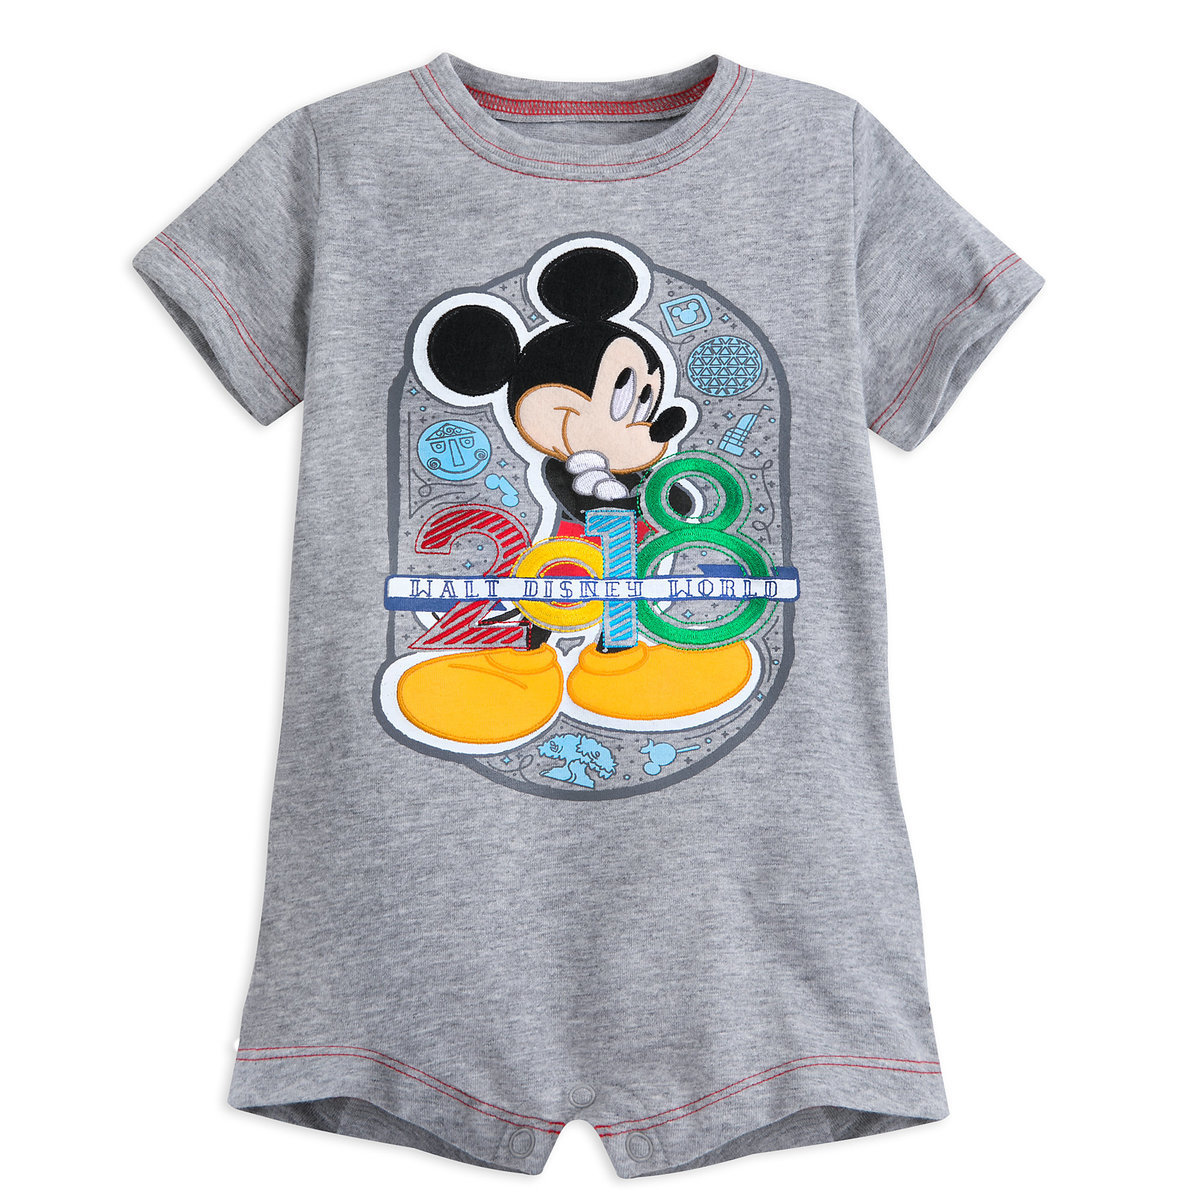 c2ee9fb04d6 Product Image of Mickey Mouse Romper for Baby - Walt Disney World 2018   1